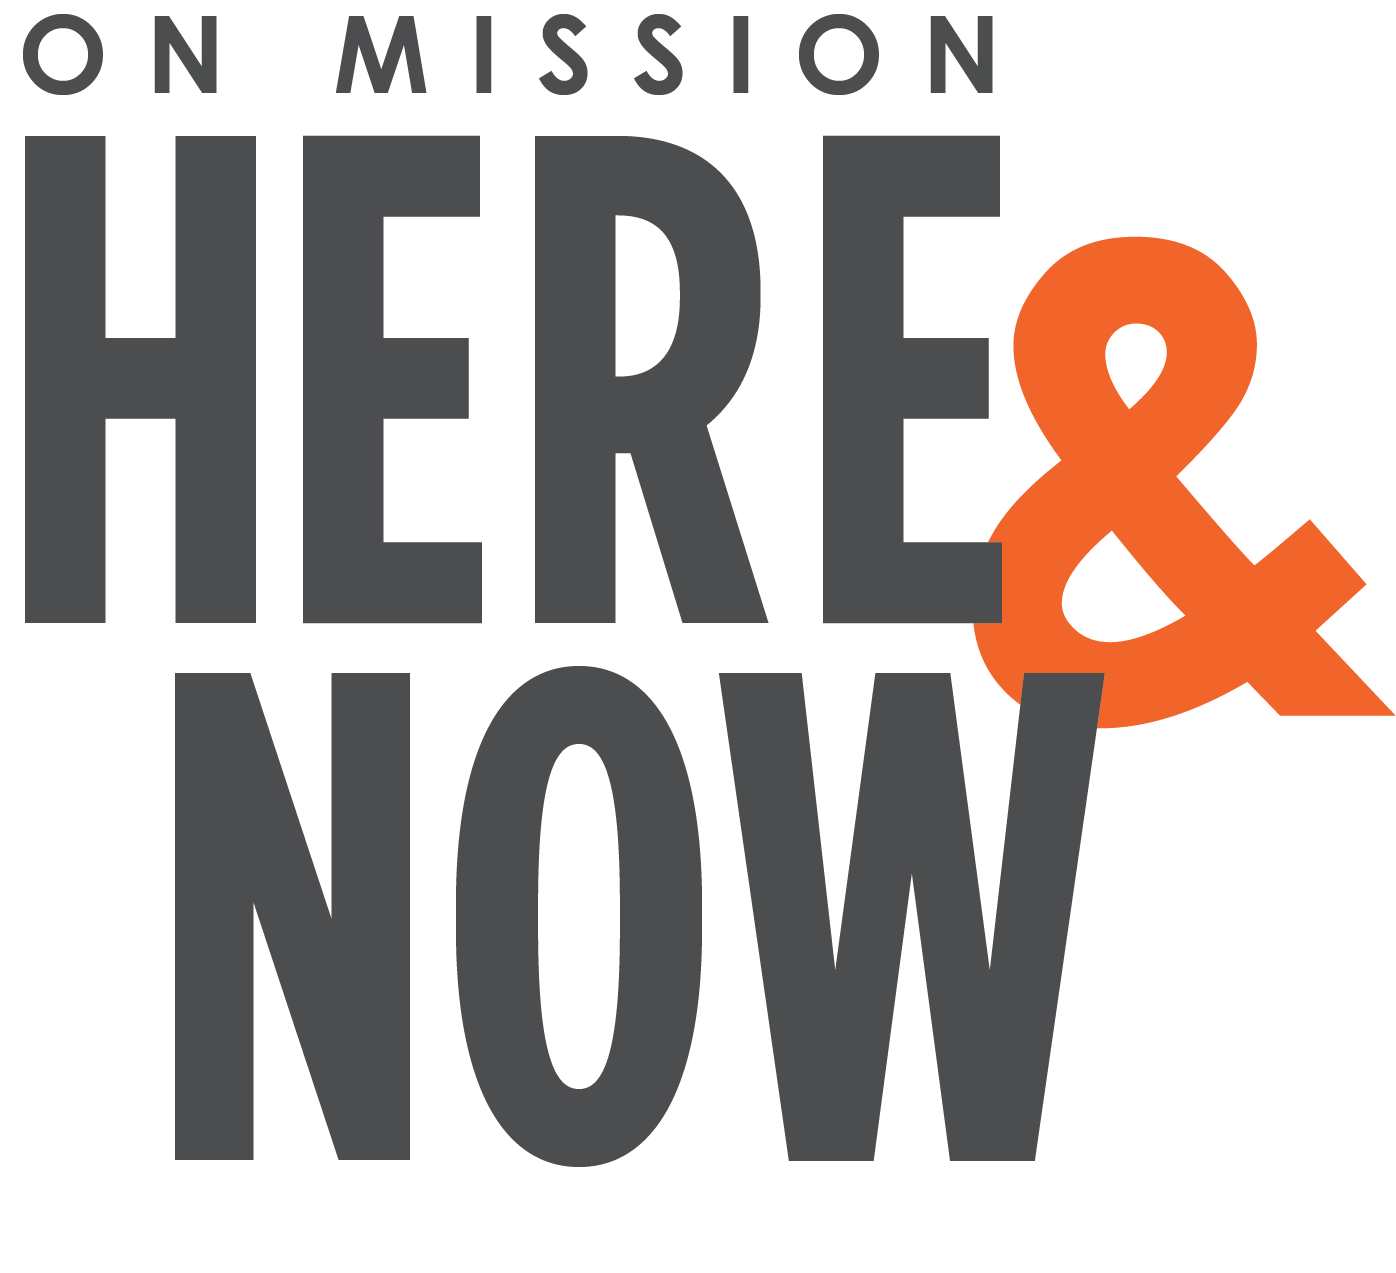 Missions clipart stewardship.  theme logo anniearmstrong